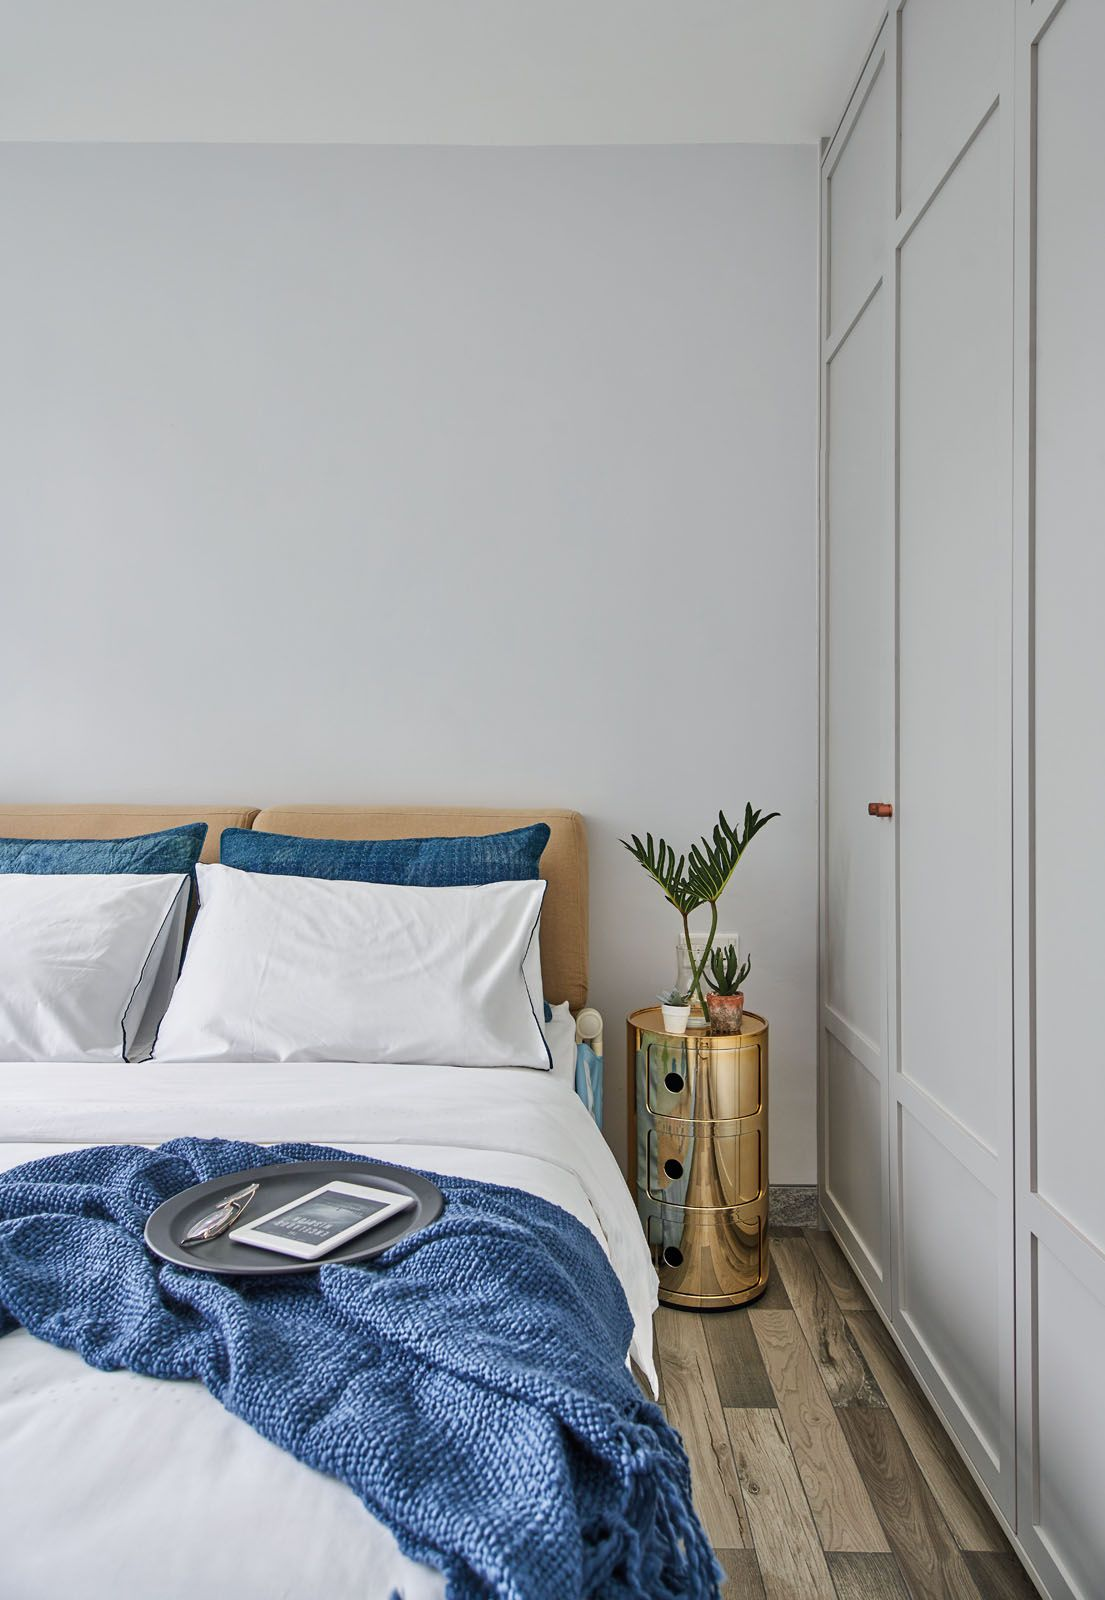 The metallic Kartell Componibili cabinet by Anna Castelli Ferrieri adds a beautiful sheen to the son's bedroom